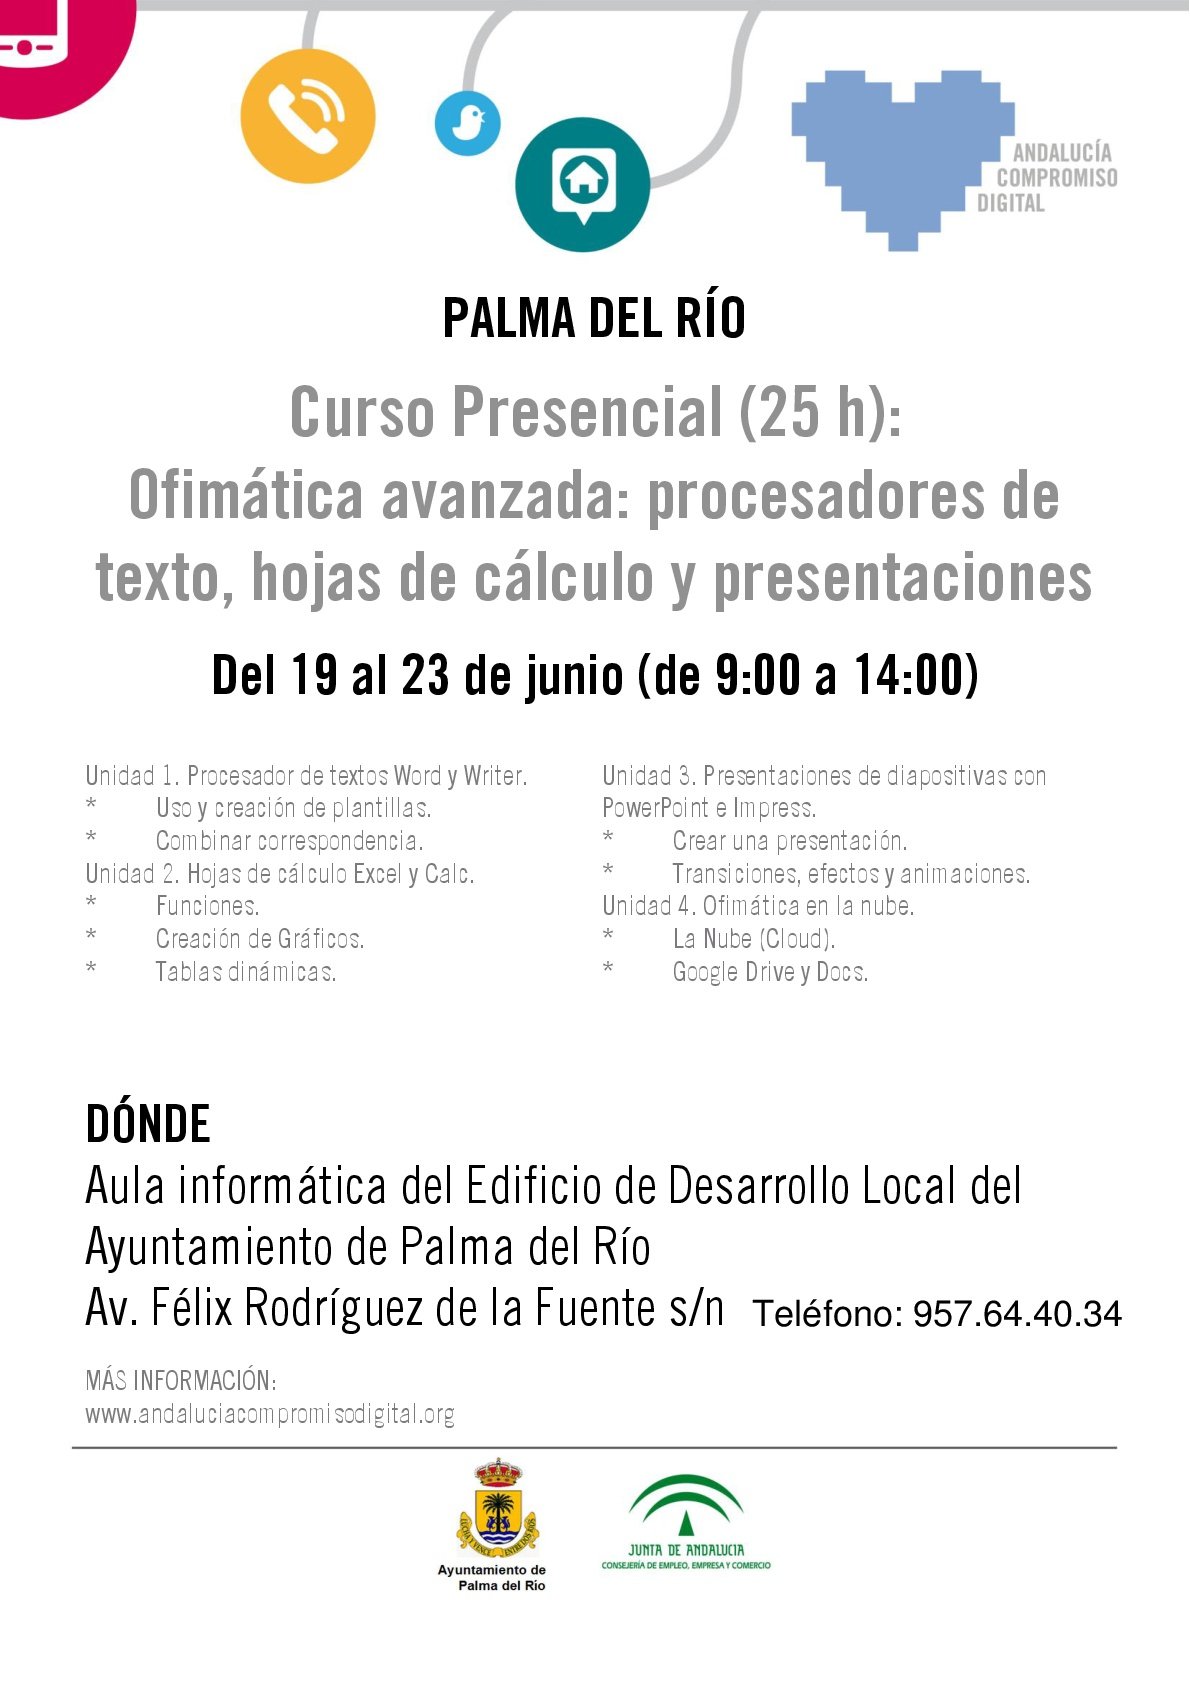 https://www.palmadelrio.es/sites/default/files/3_ofimatica_avanzada_procesadores_de_texto-001.jpg